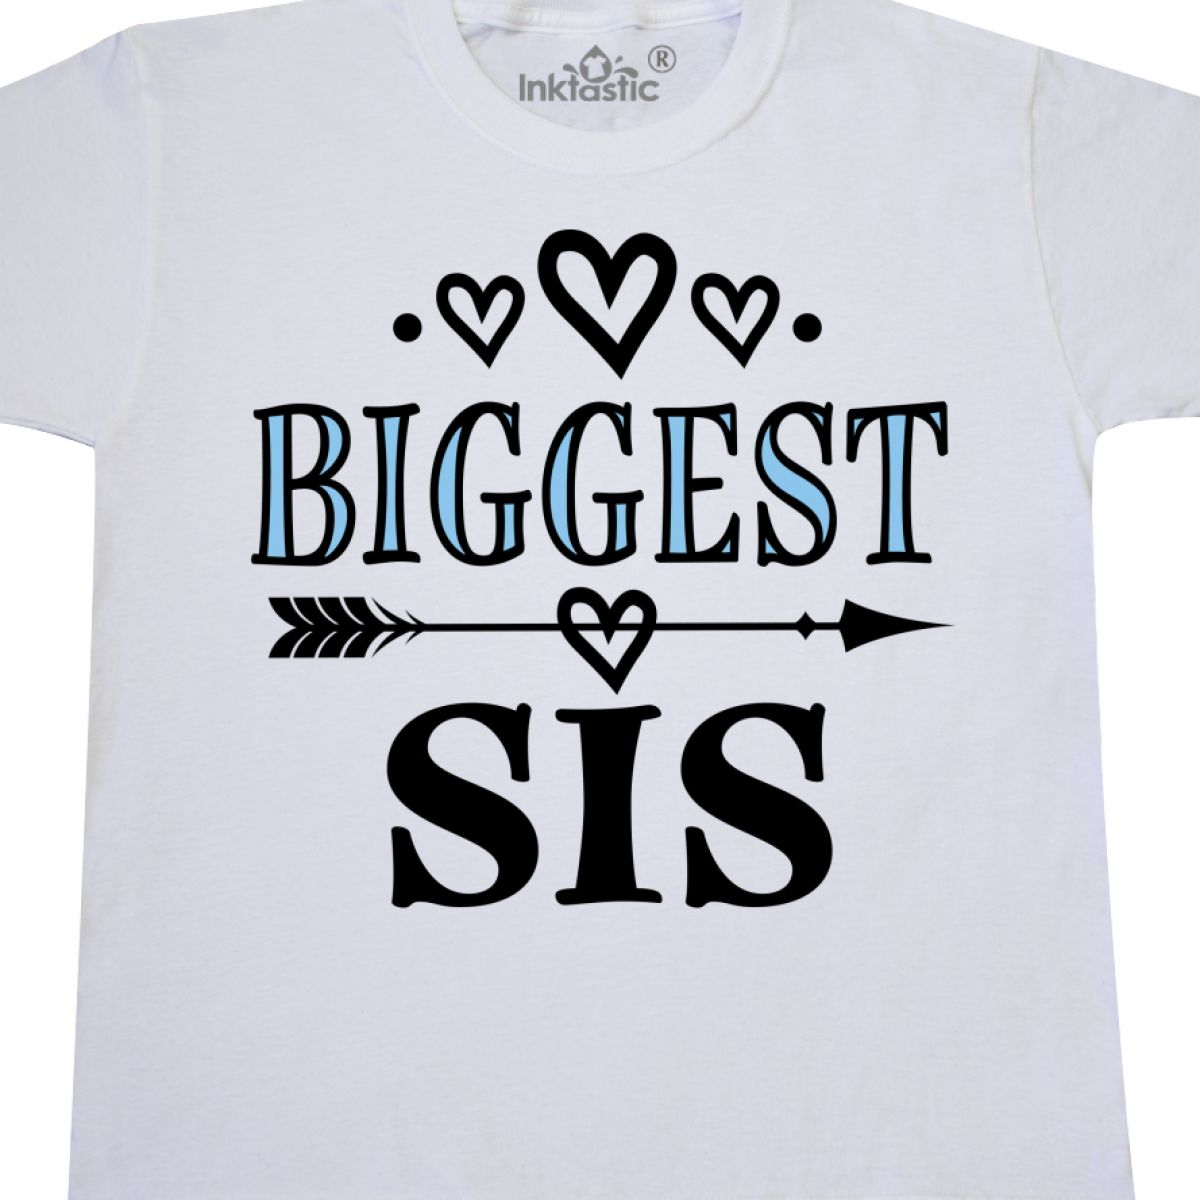 Inktastic Biggest Sis Girls Sister Announcement Youth T-Shirt Clothing Clothes